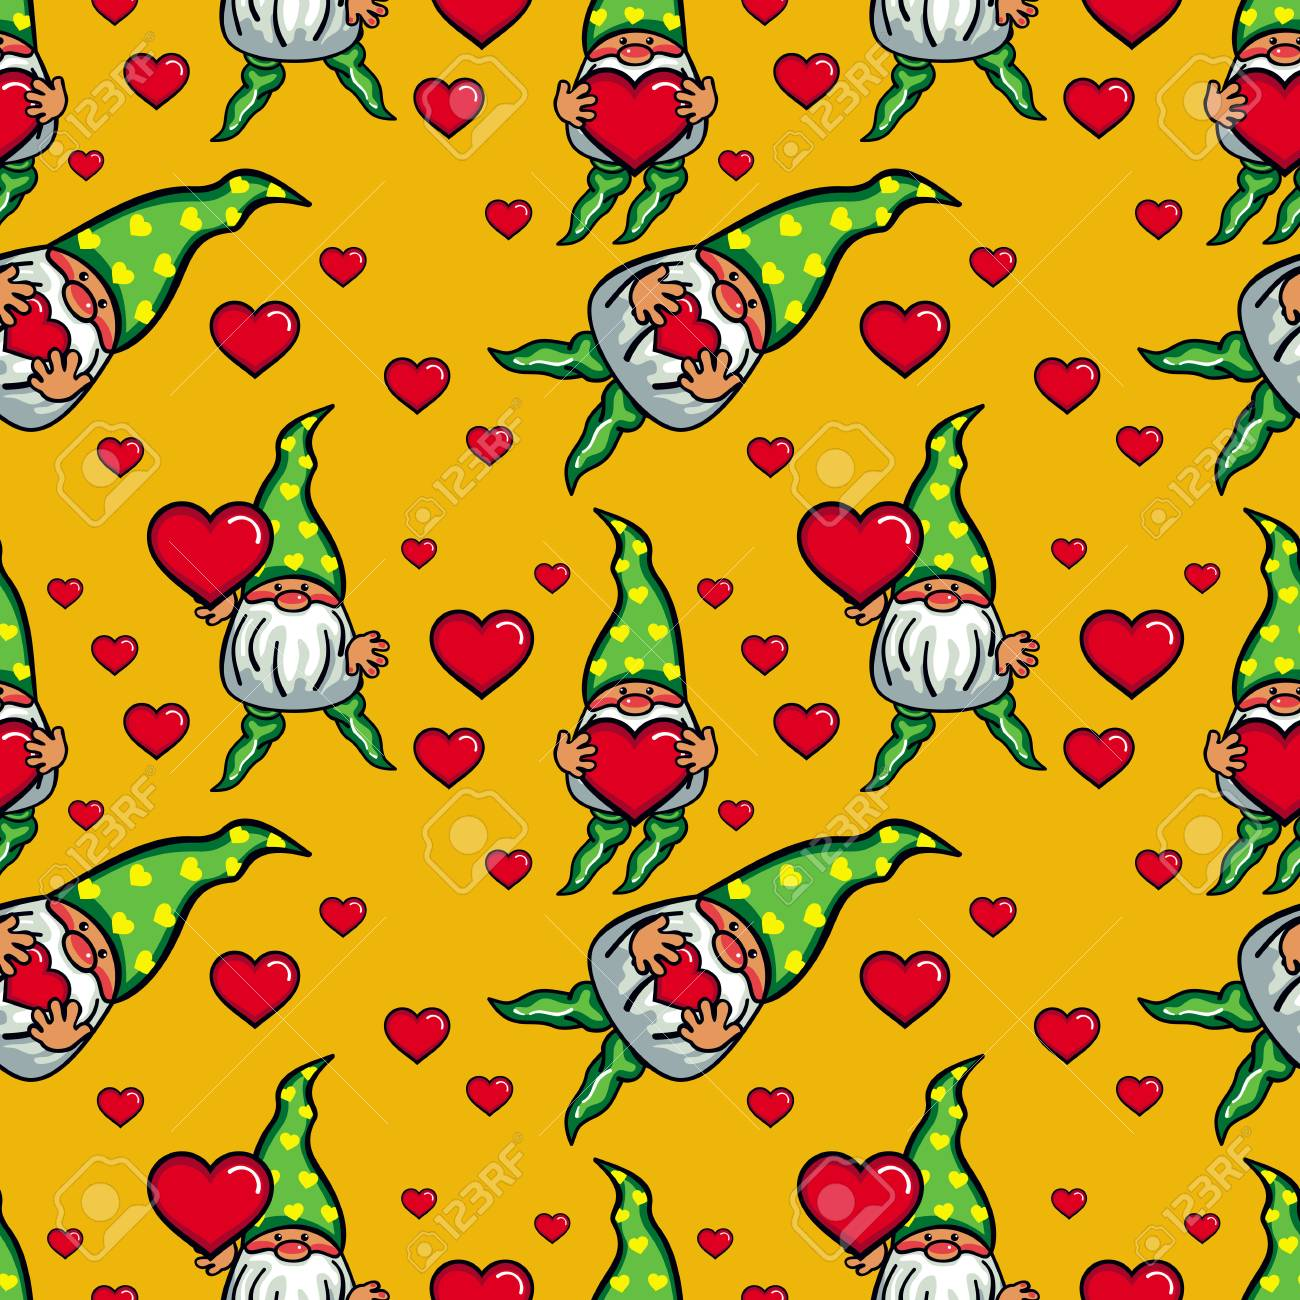 Seamless pattern with cute gnome holding heart funny background seamless pattern with cute gnome holding heart funny background for holiday decorations greetings bookmarktalkfo Image collections